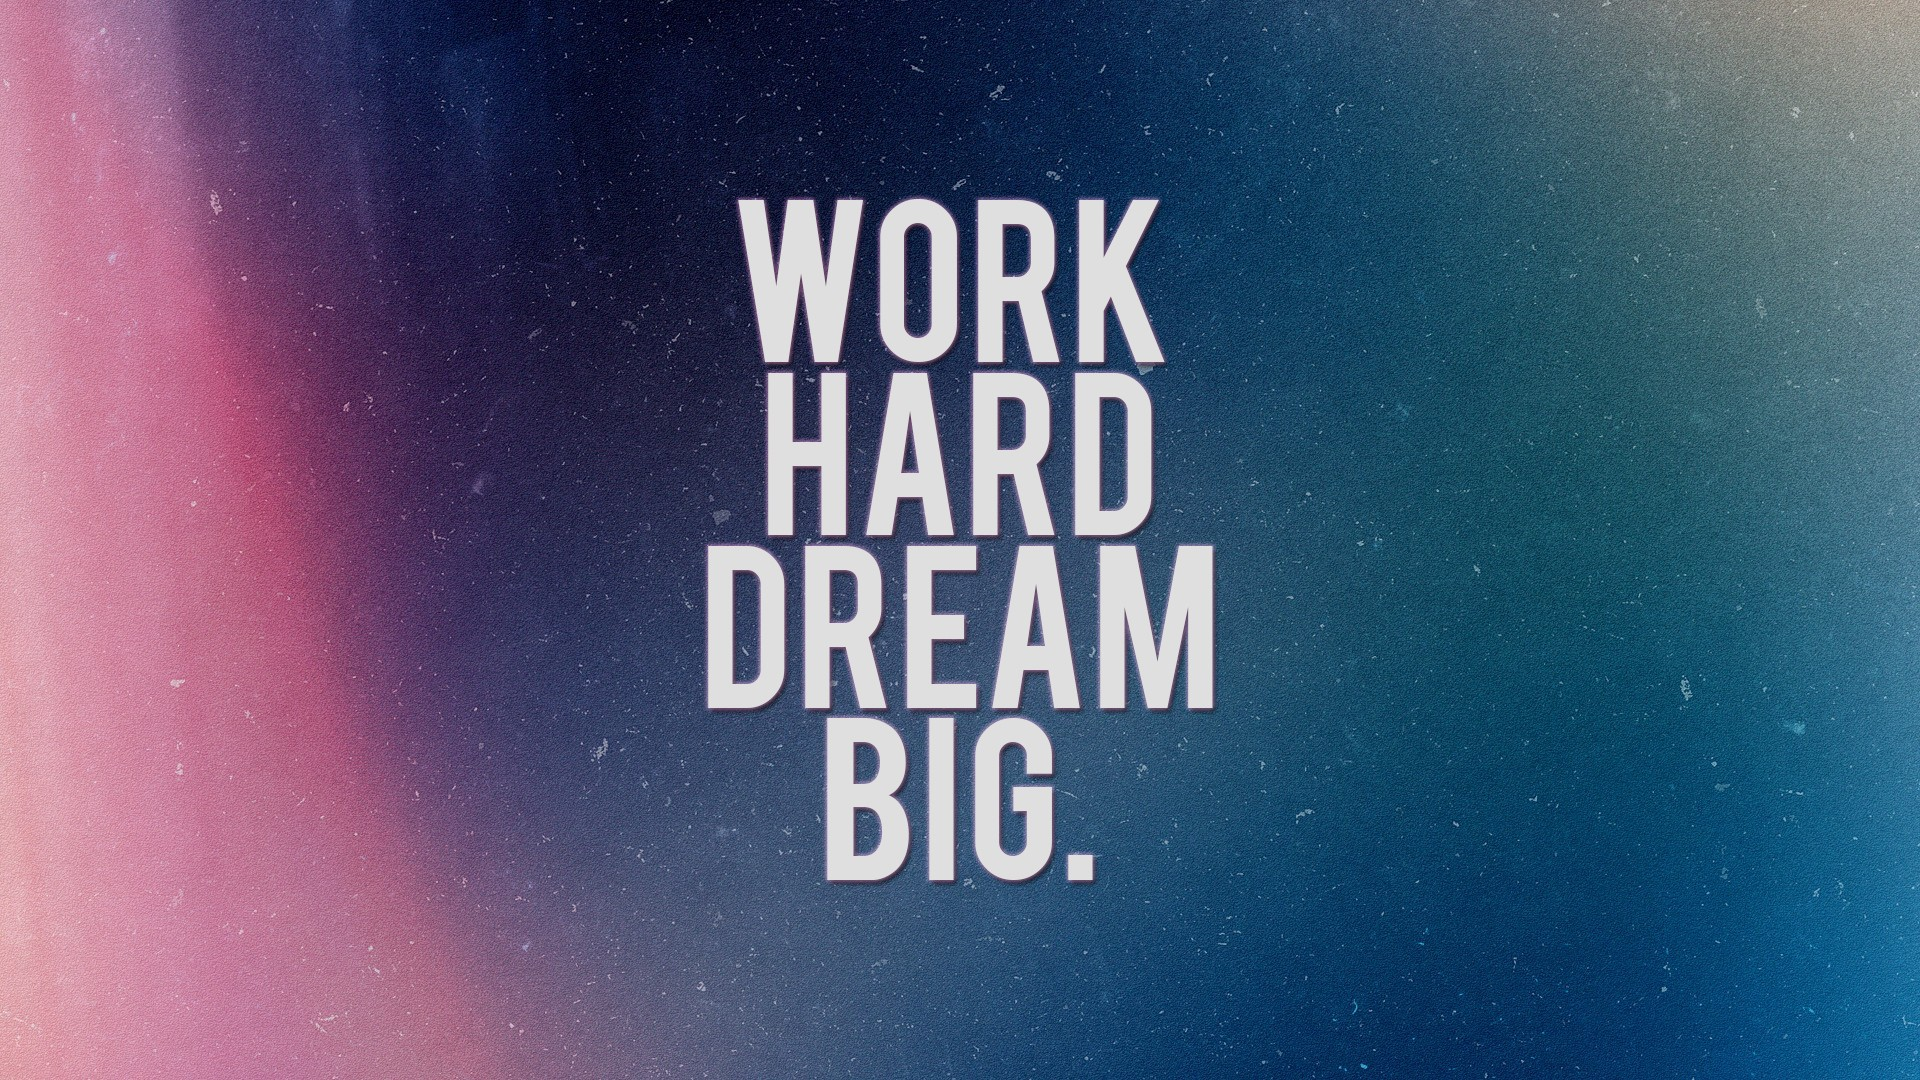 motivational wallpaper dreams